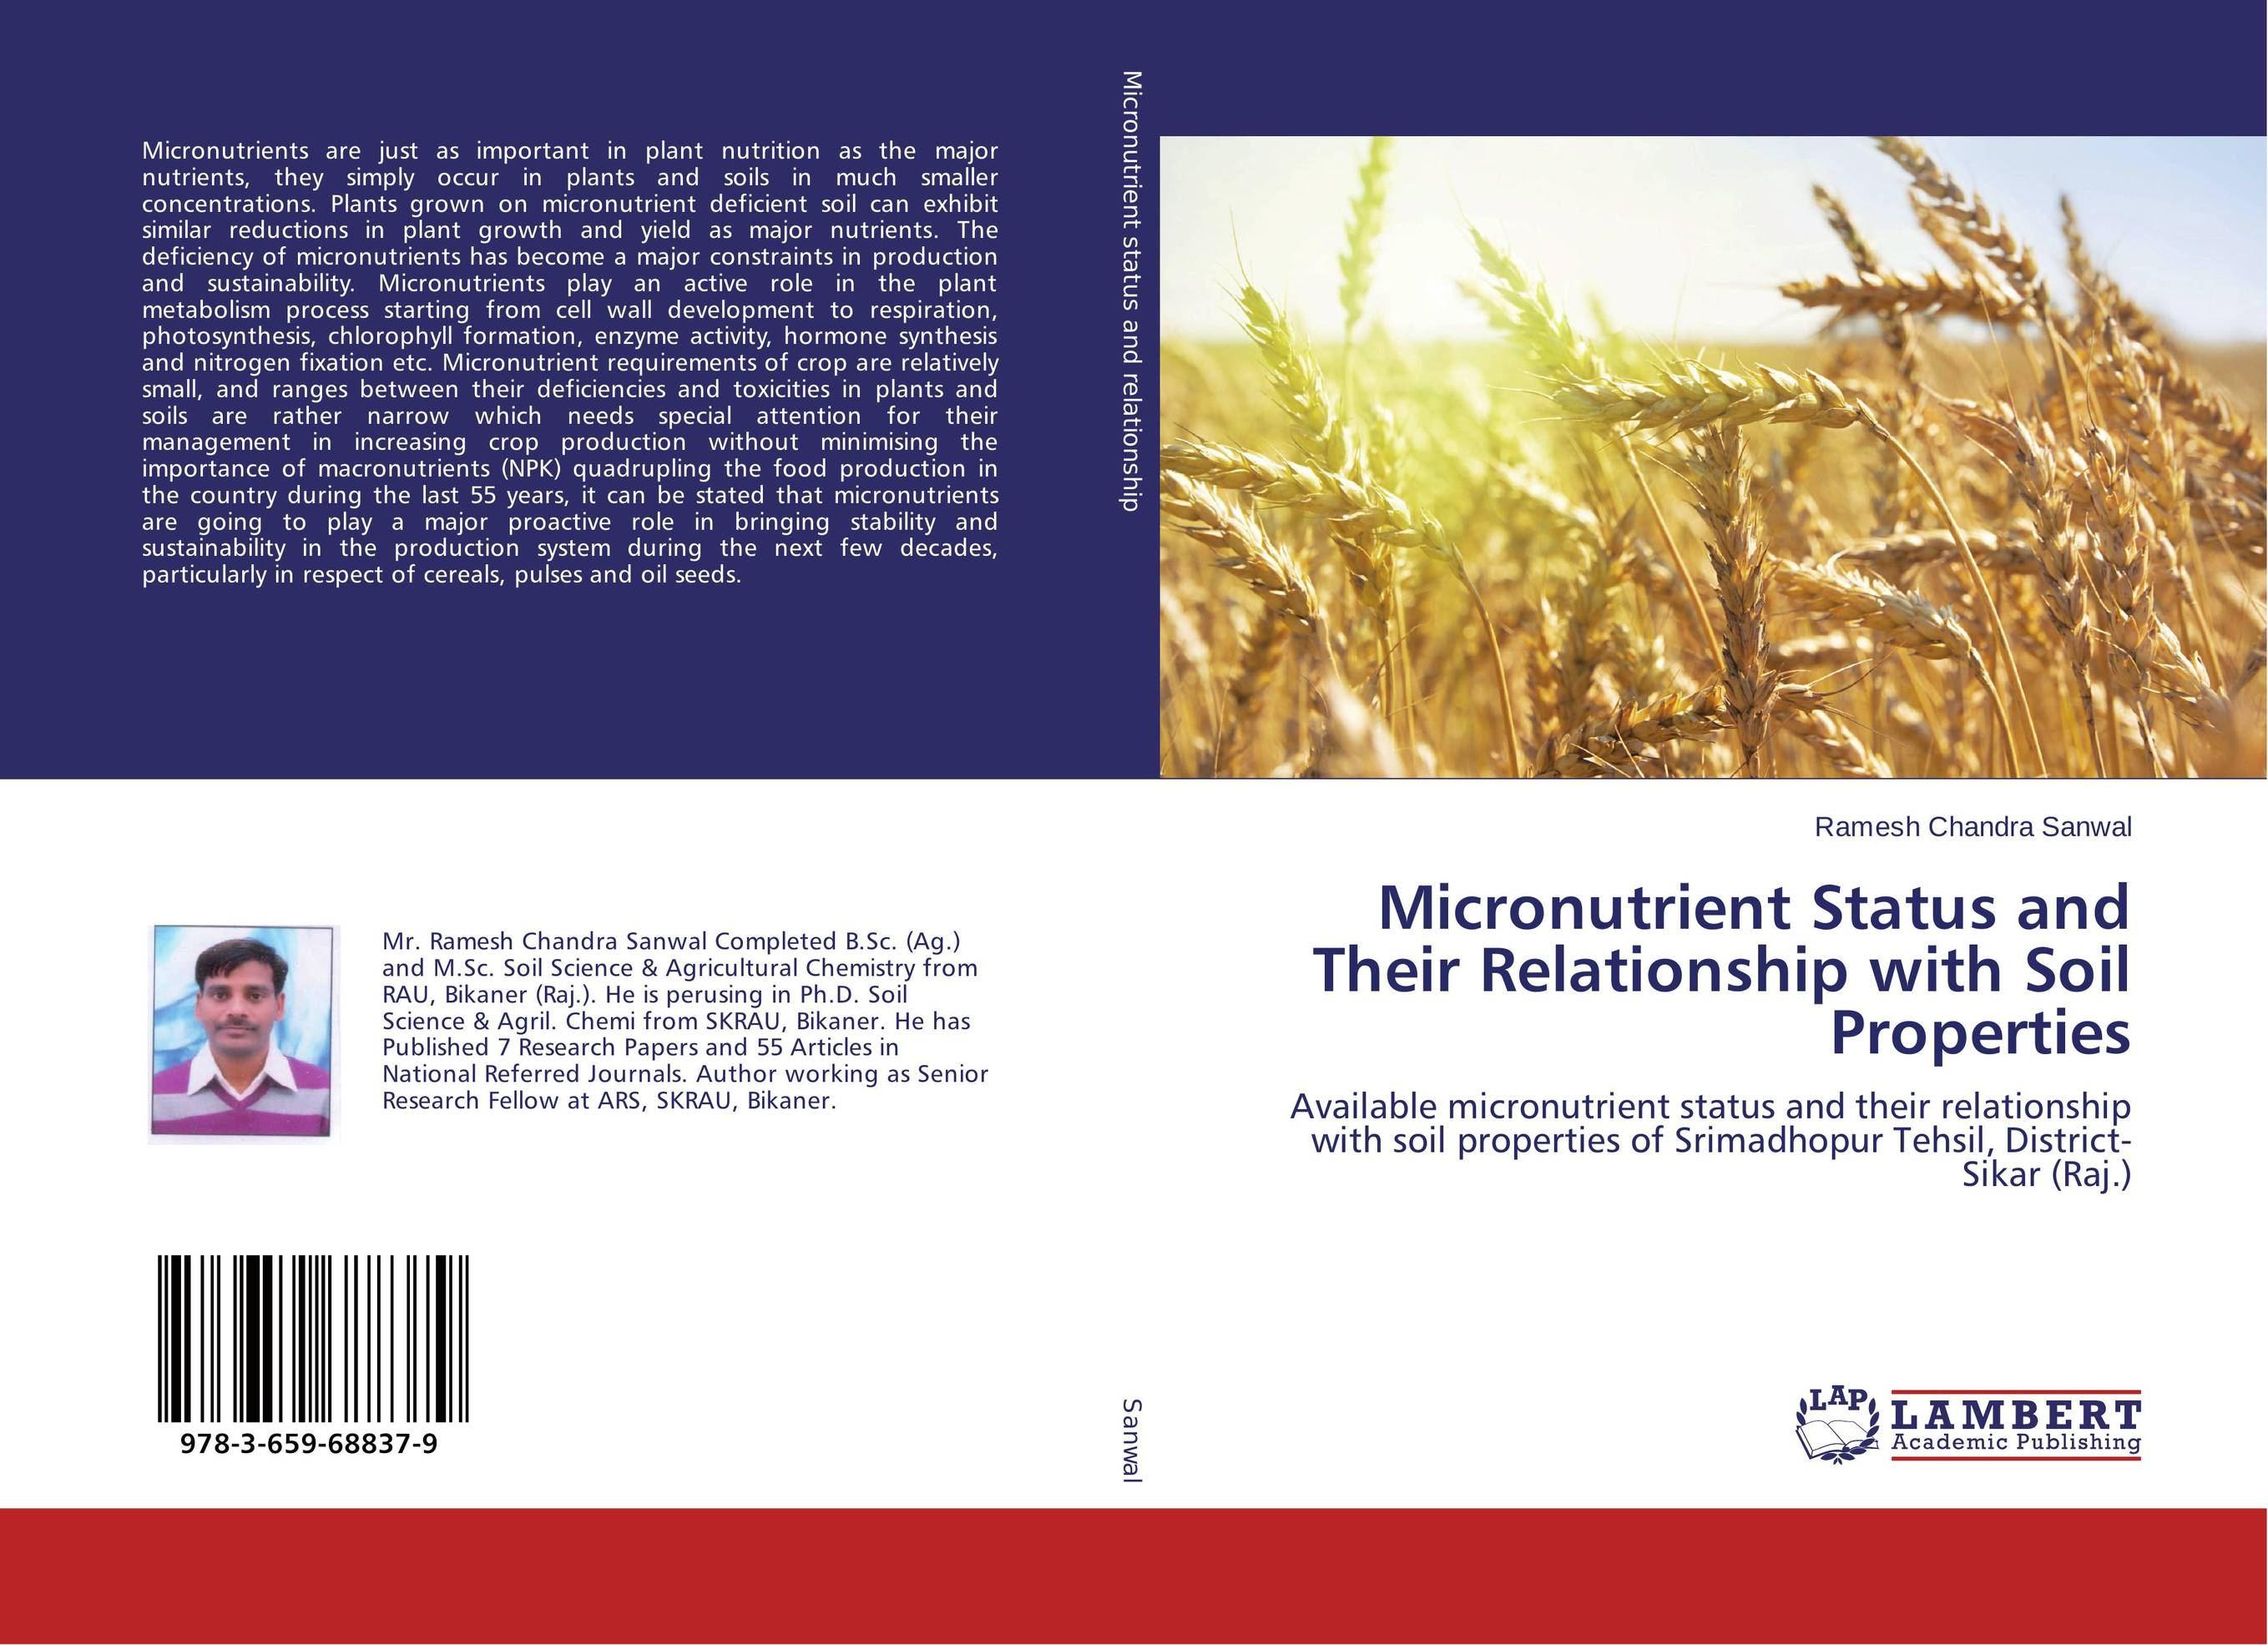 Micronutrient Status and Their Relationship with Soil Properties adding value to the citrus pulp by enzyme biotechnology production